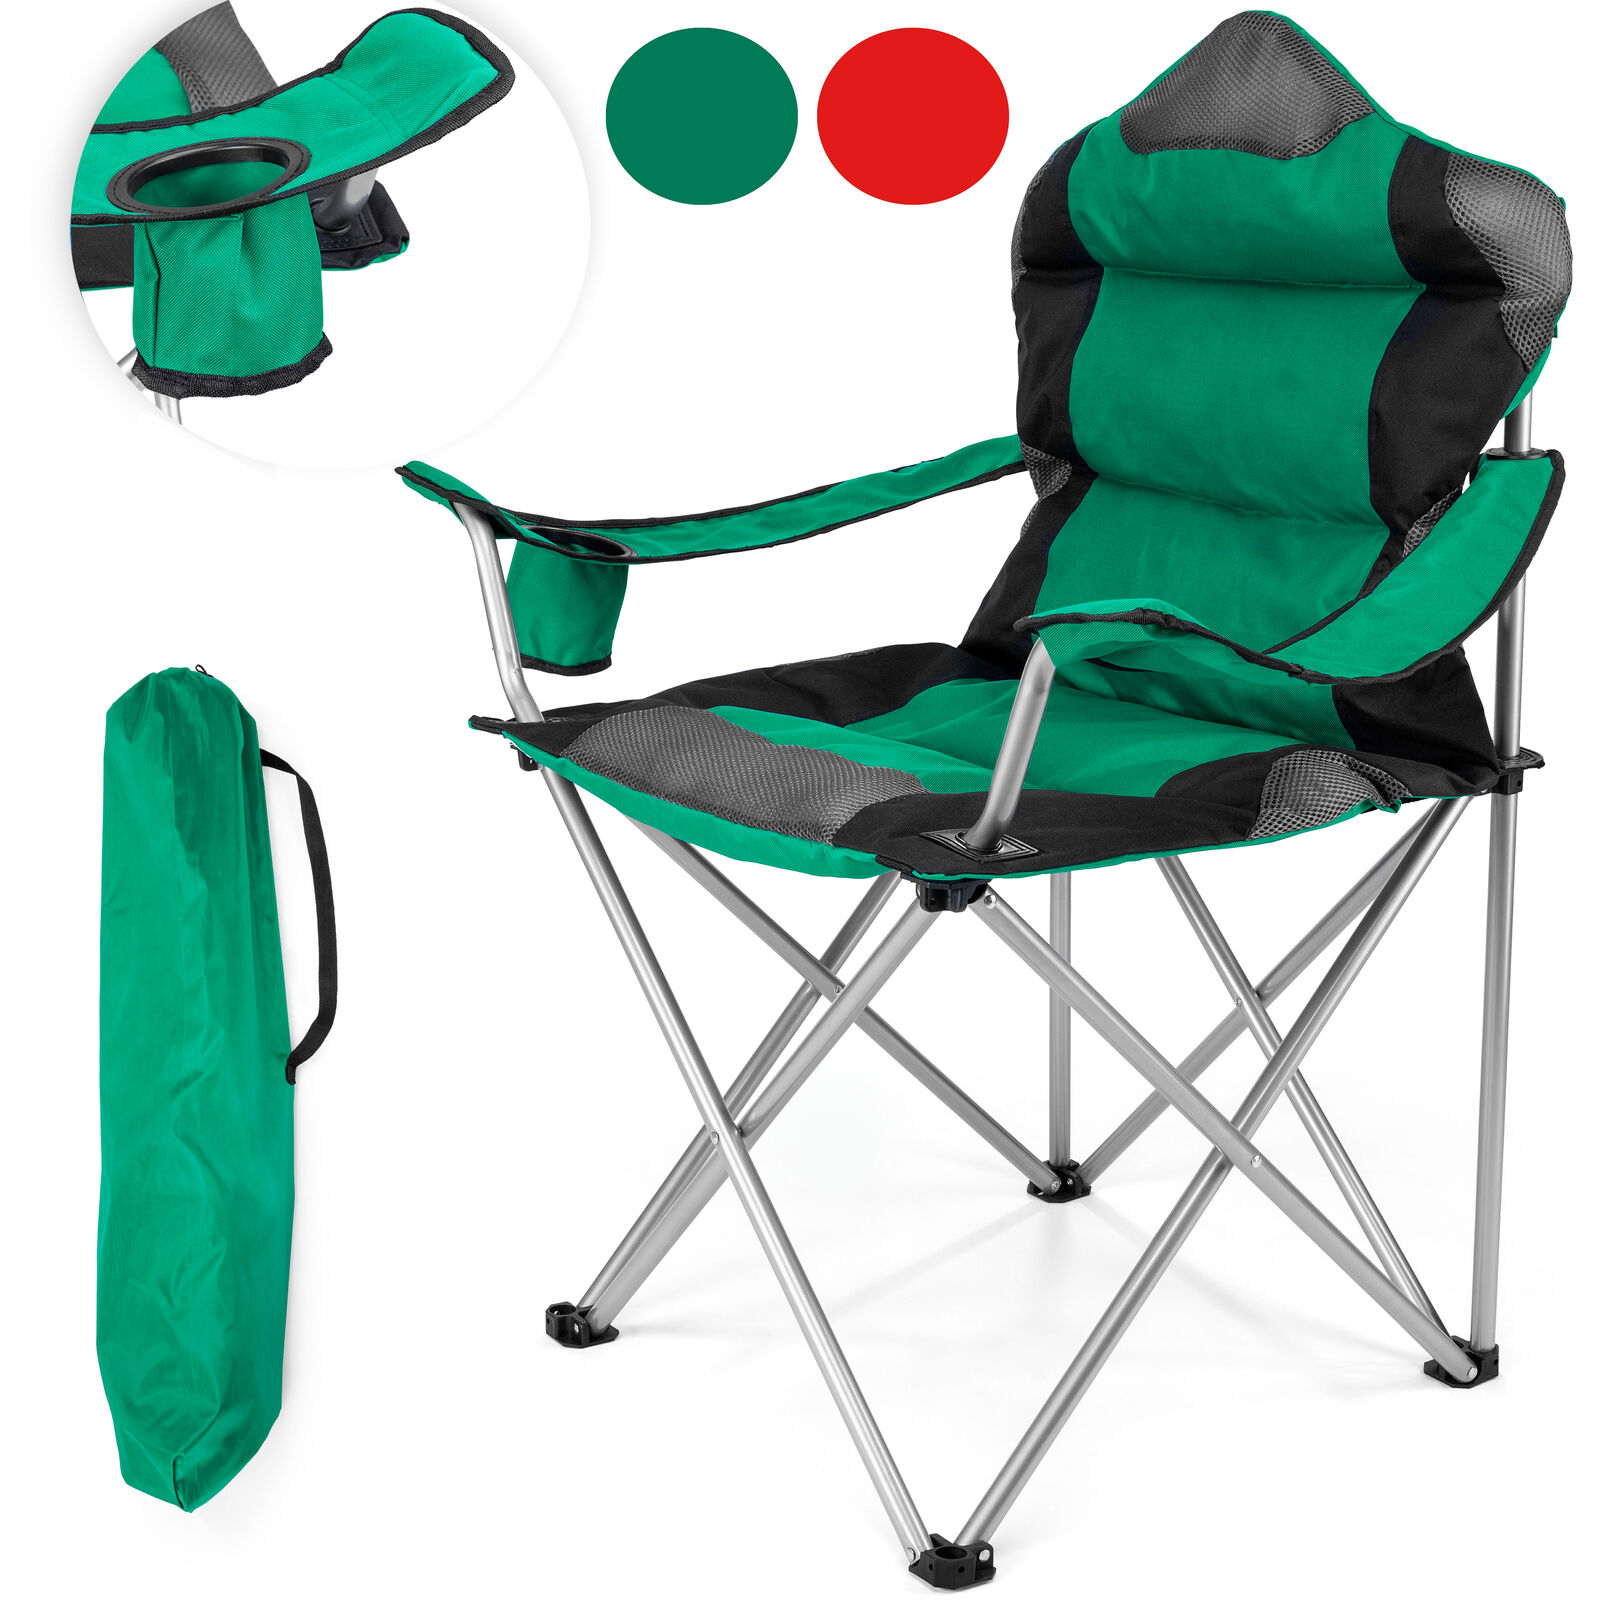 TRESKO Folding camping chair foldable up to 150 kg fishing chair with carry bag